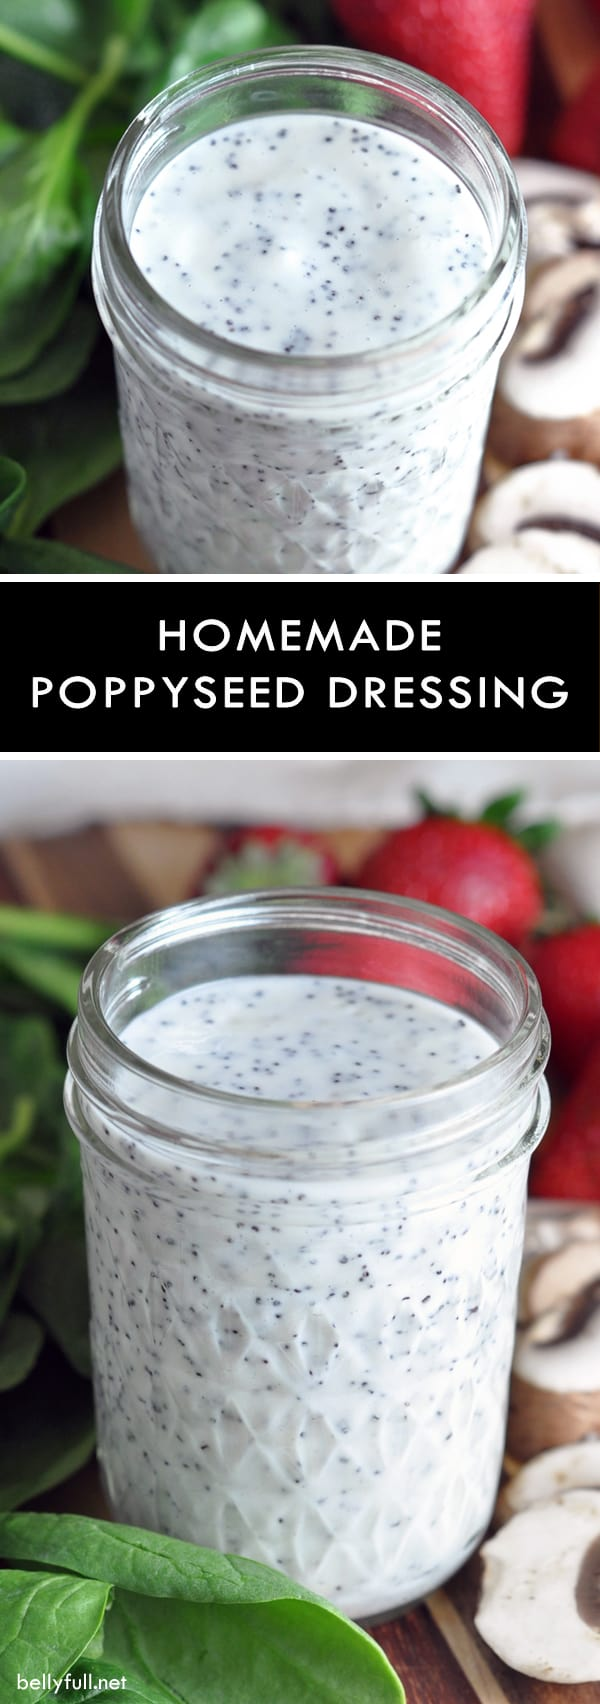 picture of homemade poppyseed salad dressing in a jar